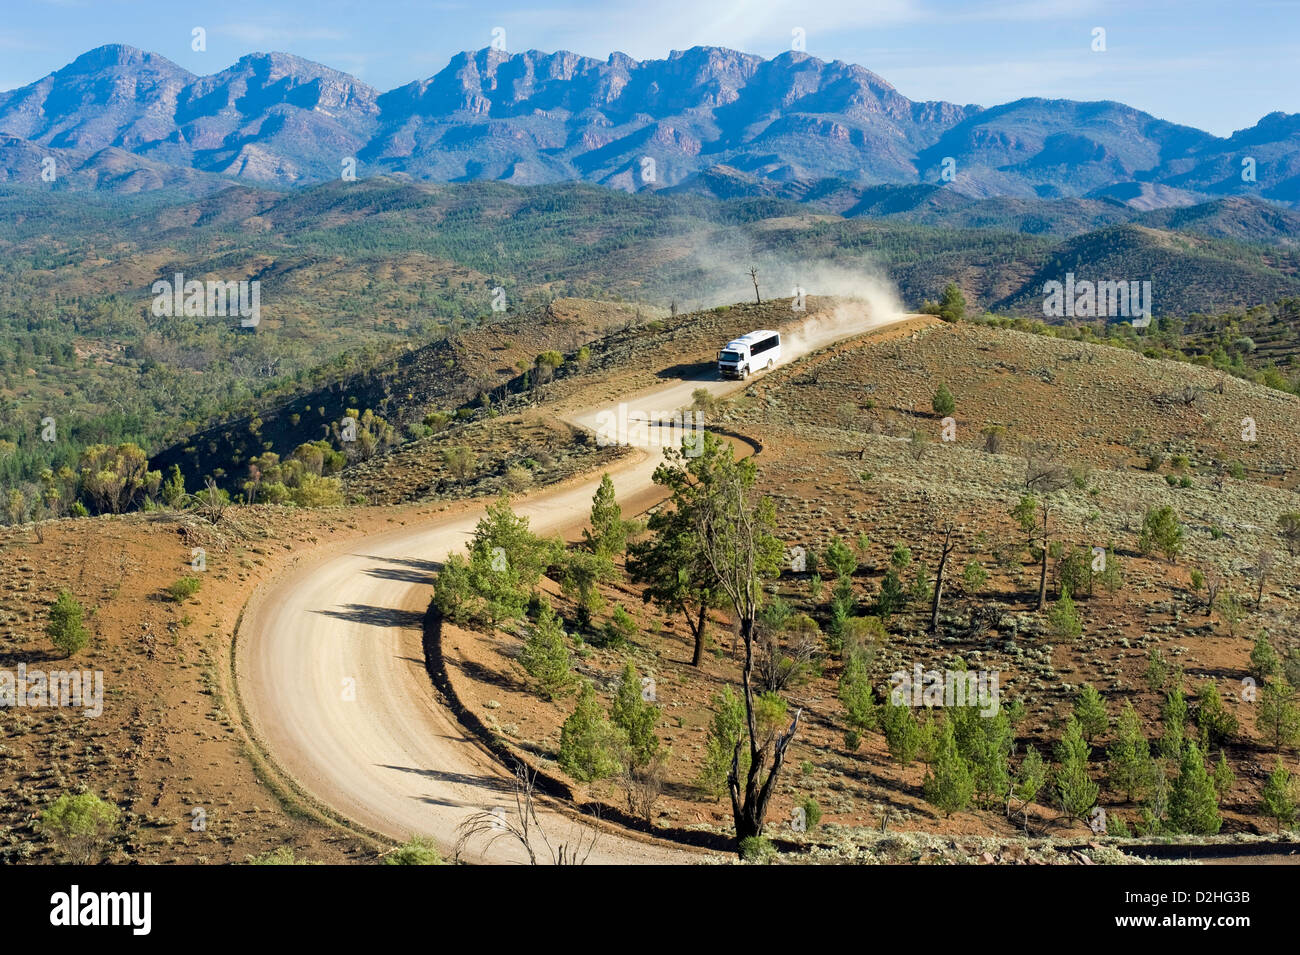 An outback tour bus makes its way along a dusty road in South Australia's picturesque Flinders Ranges. - Stock Image